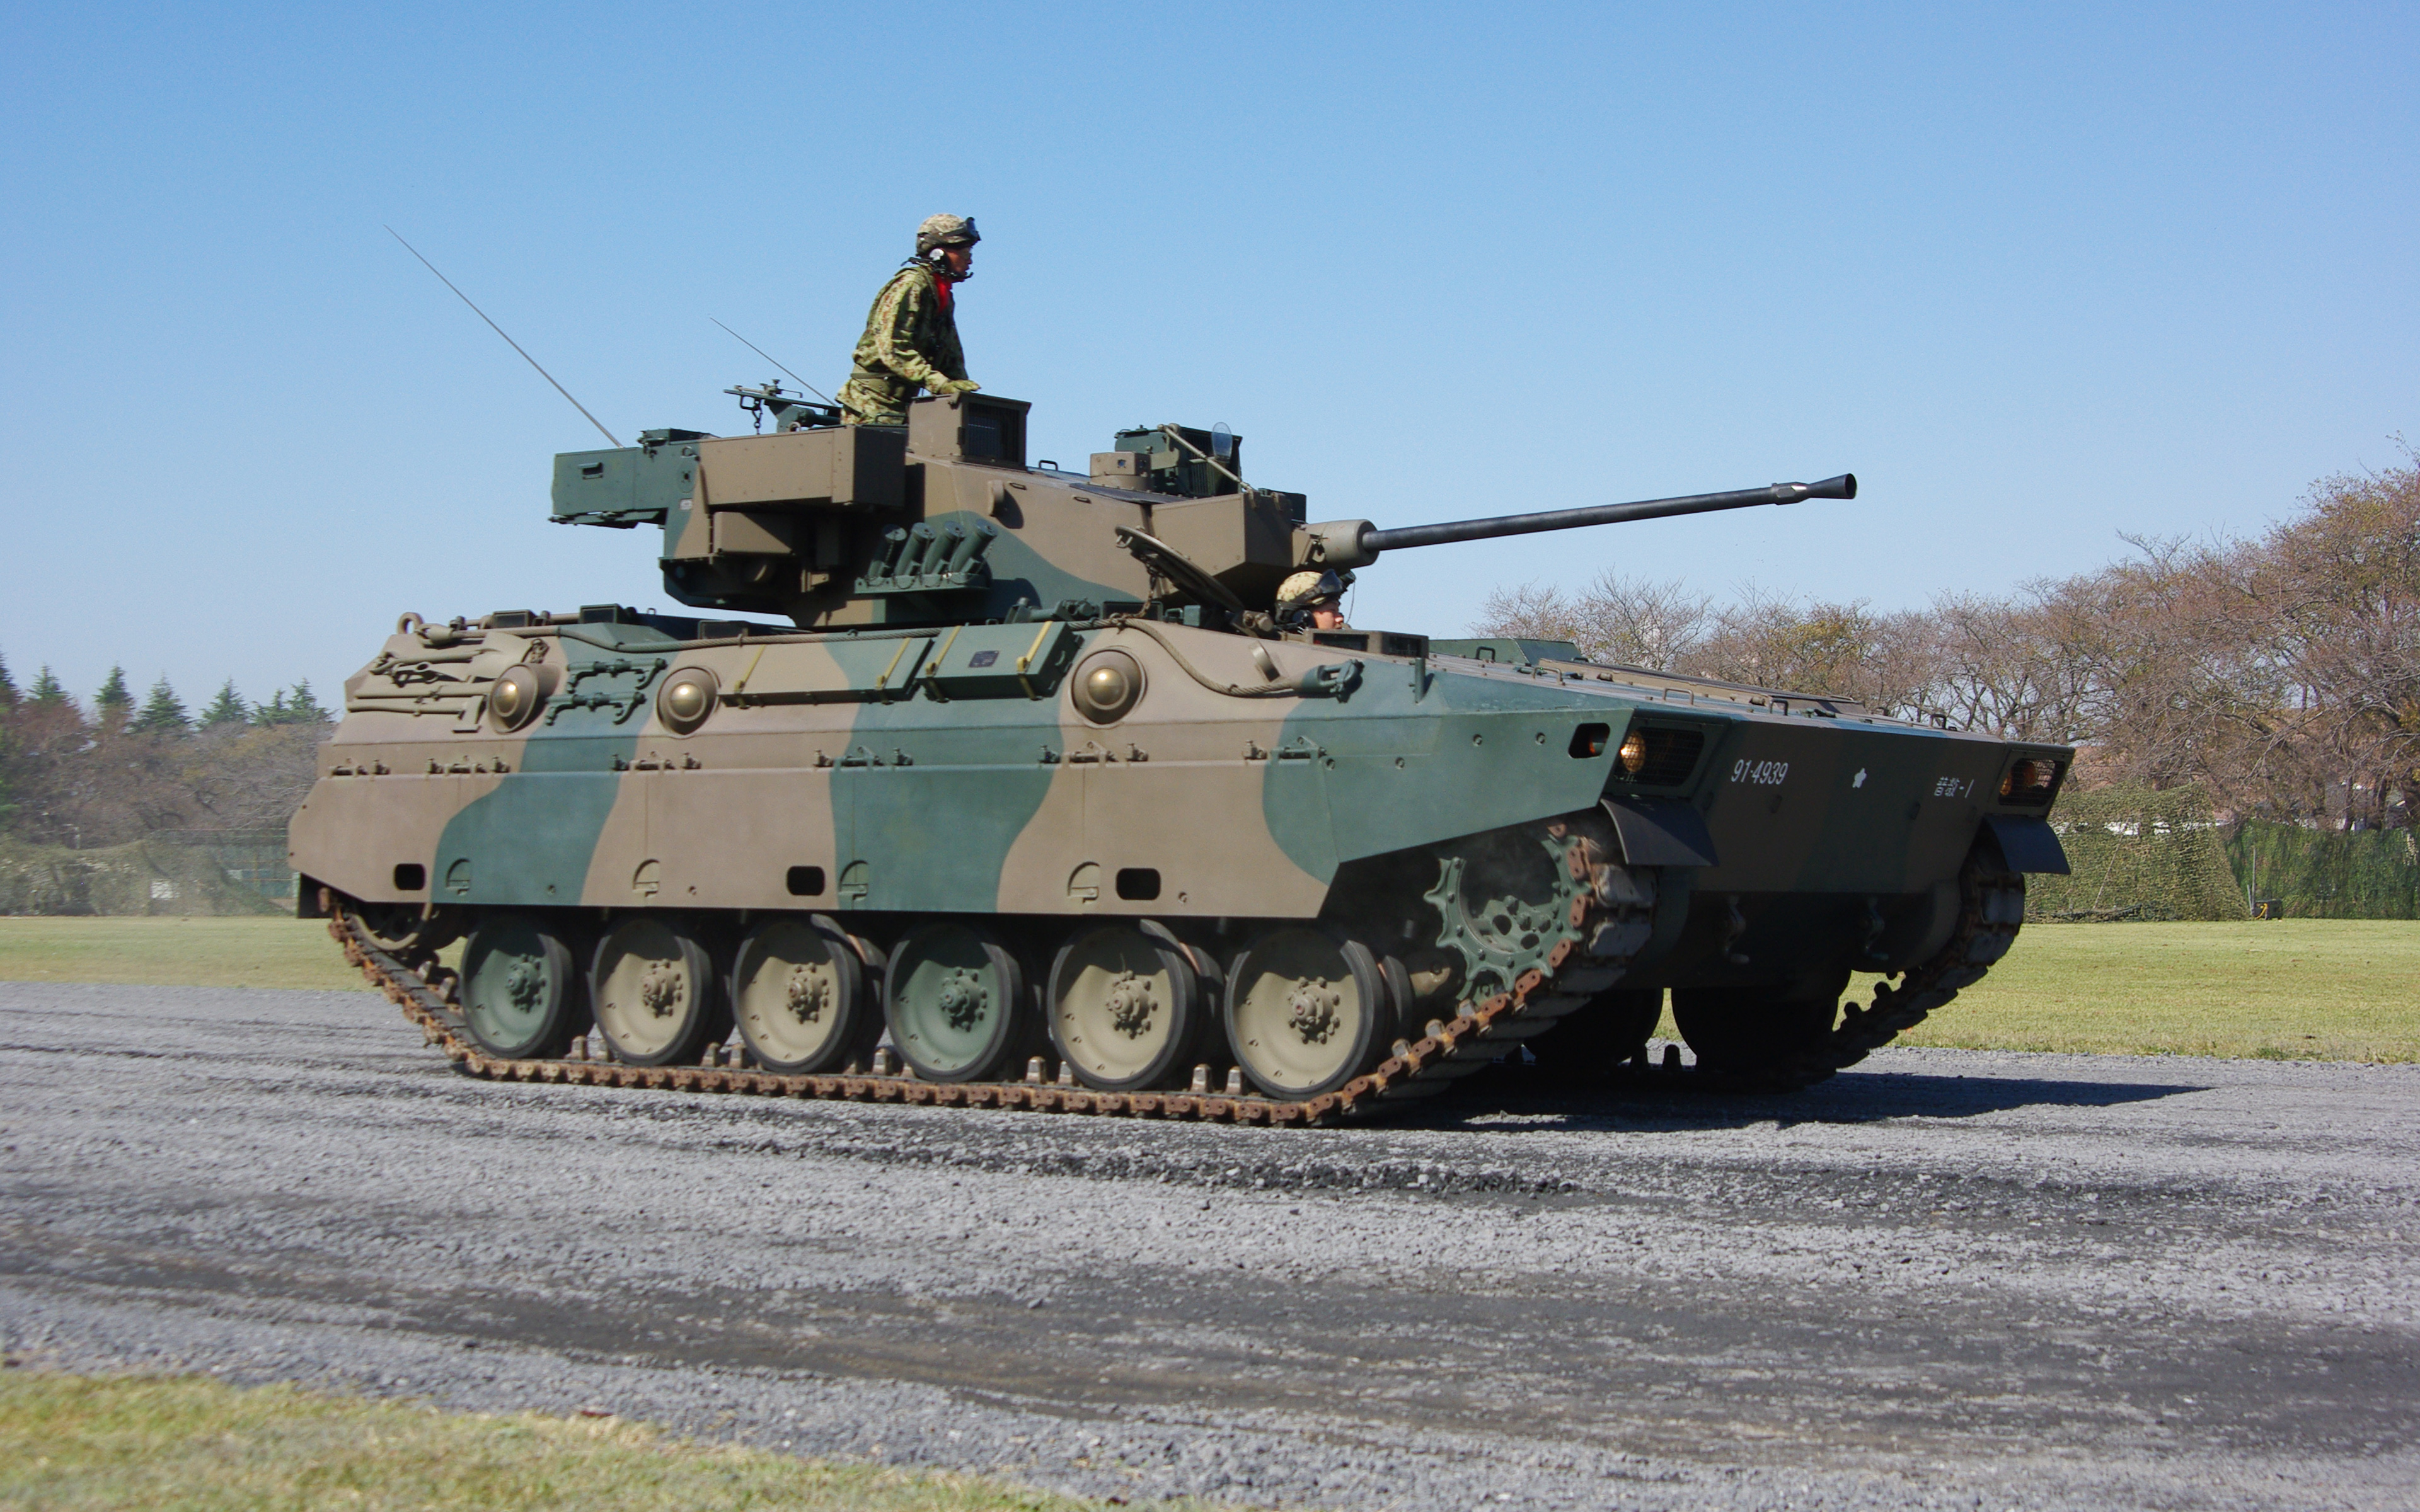 Mitsubishi Type 89, Japanese infantry fighting vehicle, IFV, Japan, armored vehicles